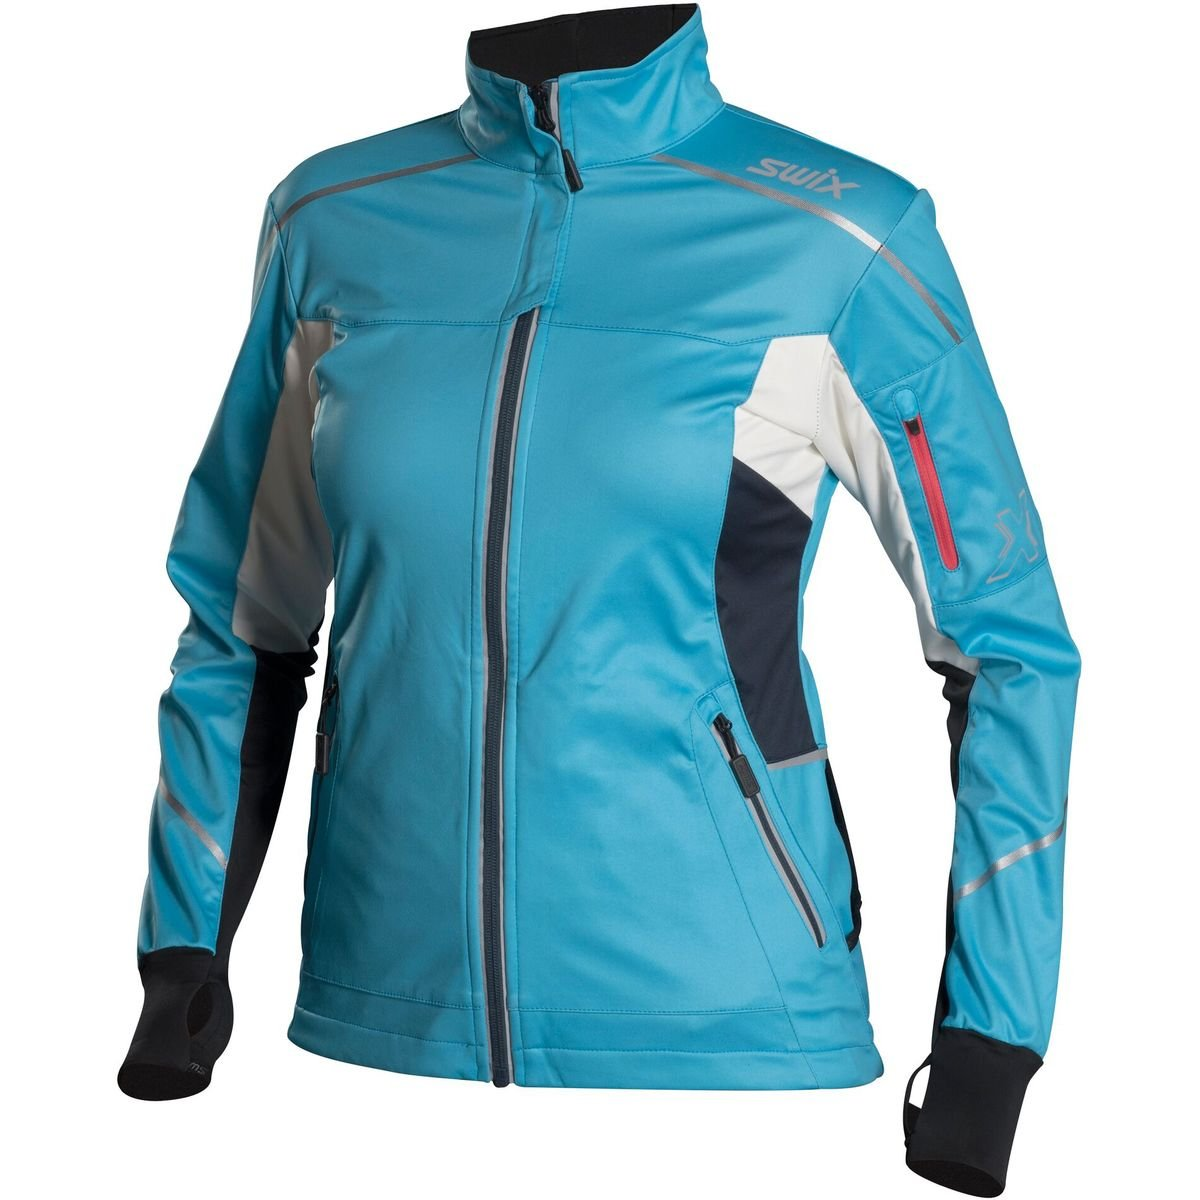 Swix Delda Light Softshell Jacket - Women's Sky, S